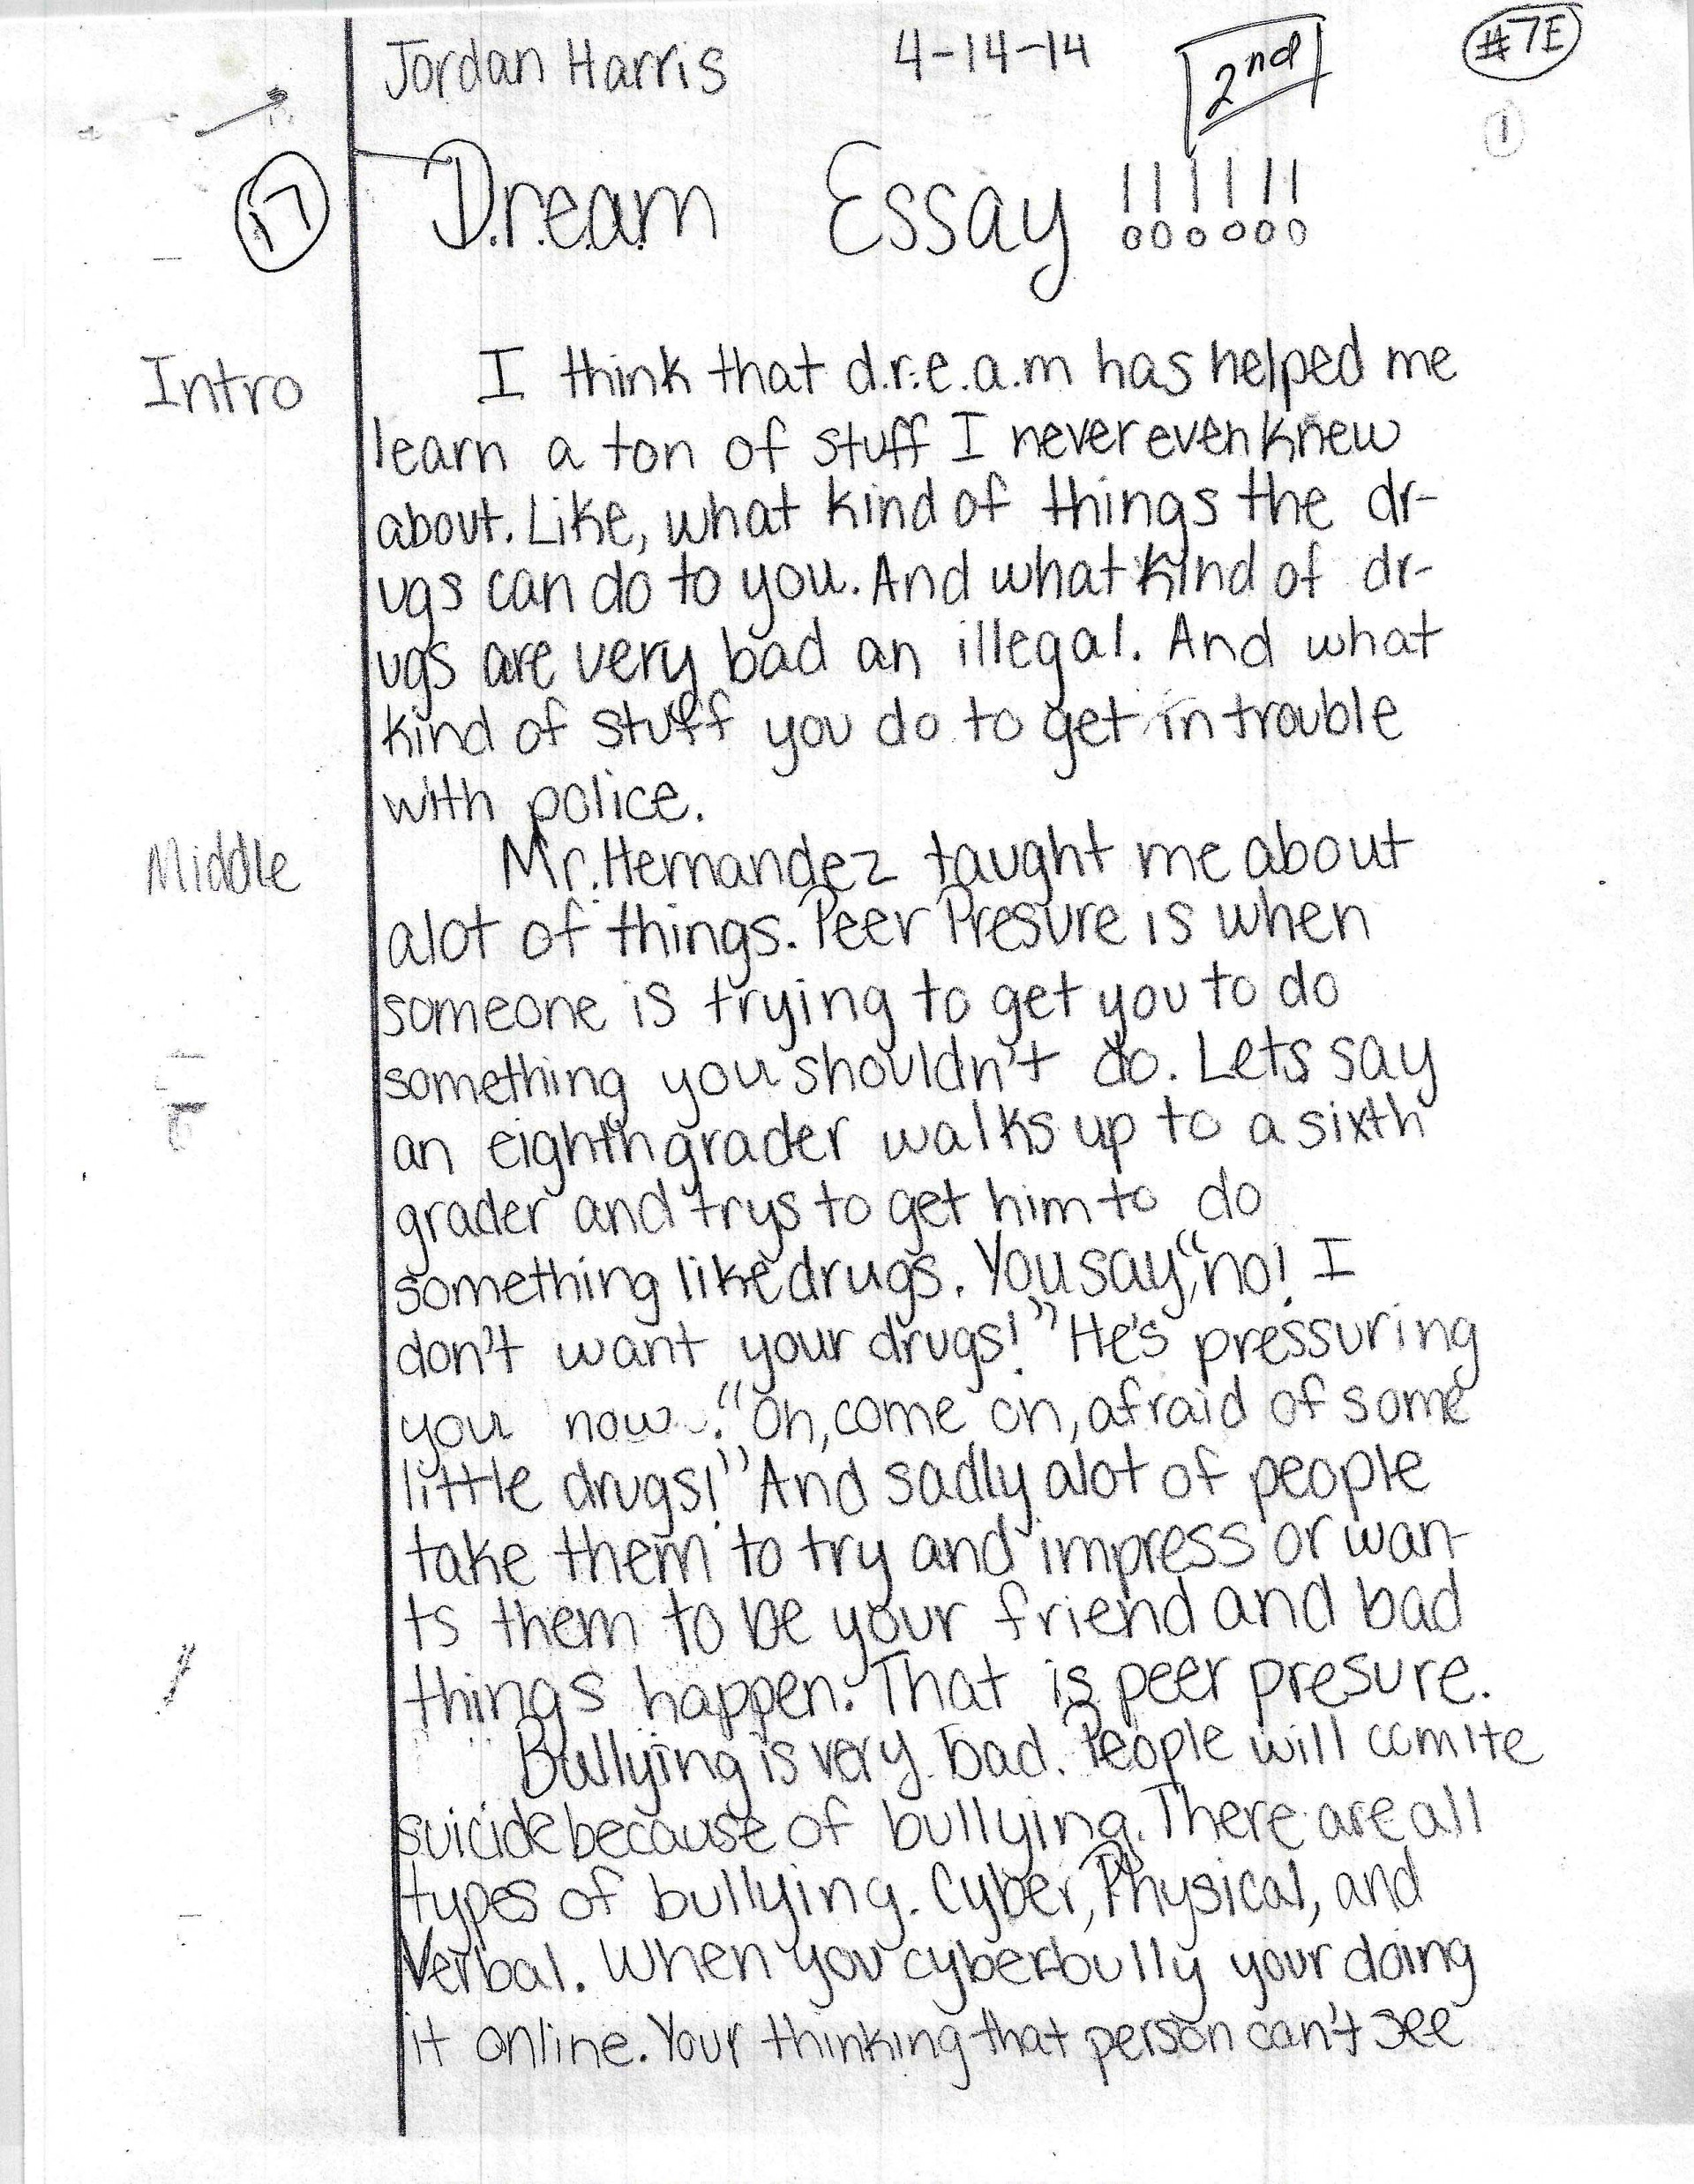 002 Essay On Bullying Example Harris Page1 Amazing The Cause And Effect In School Of Cyberbullying 1920